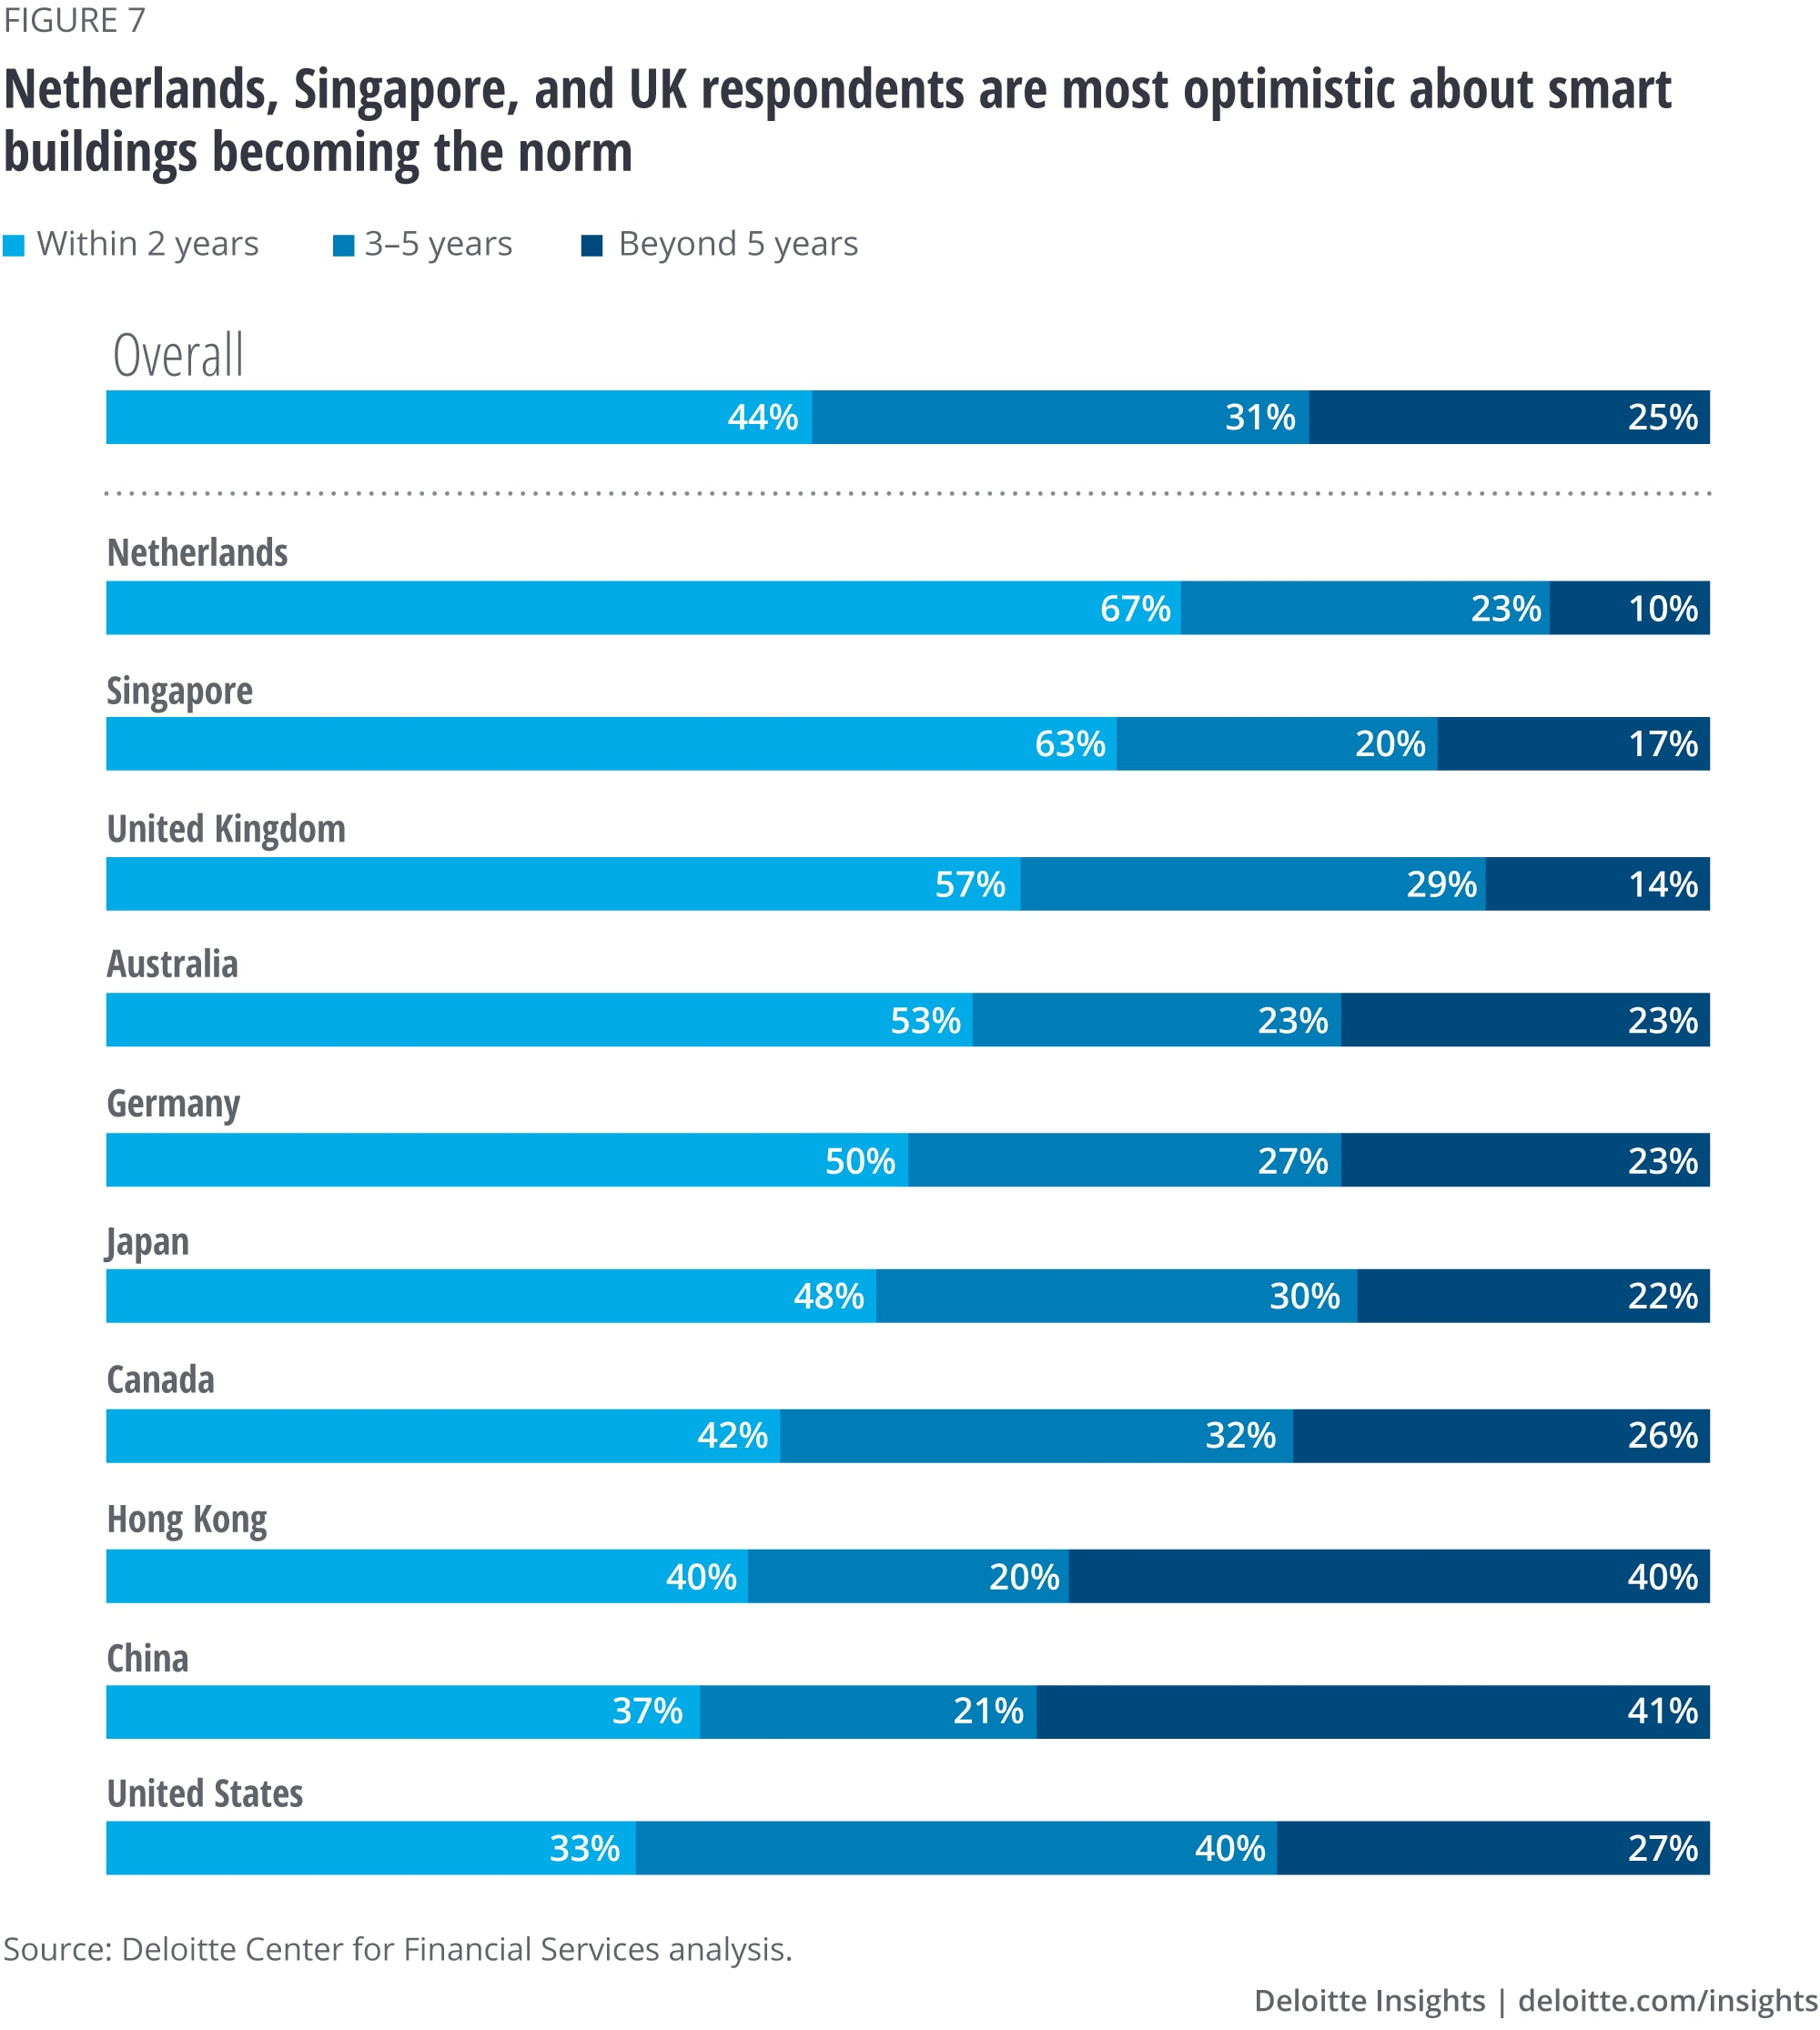 Netherlands, Singapore, and UK respondents are more optimistic about smart buildings becoming the norm